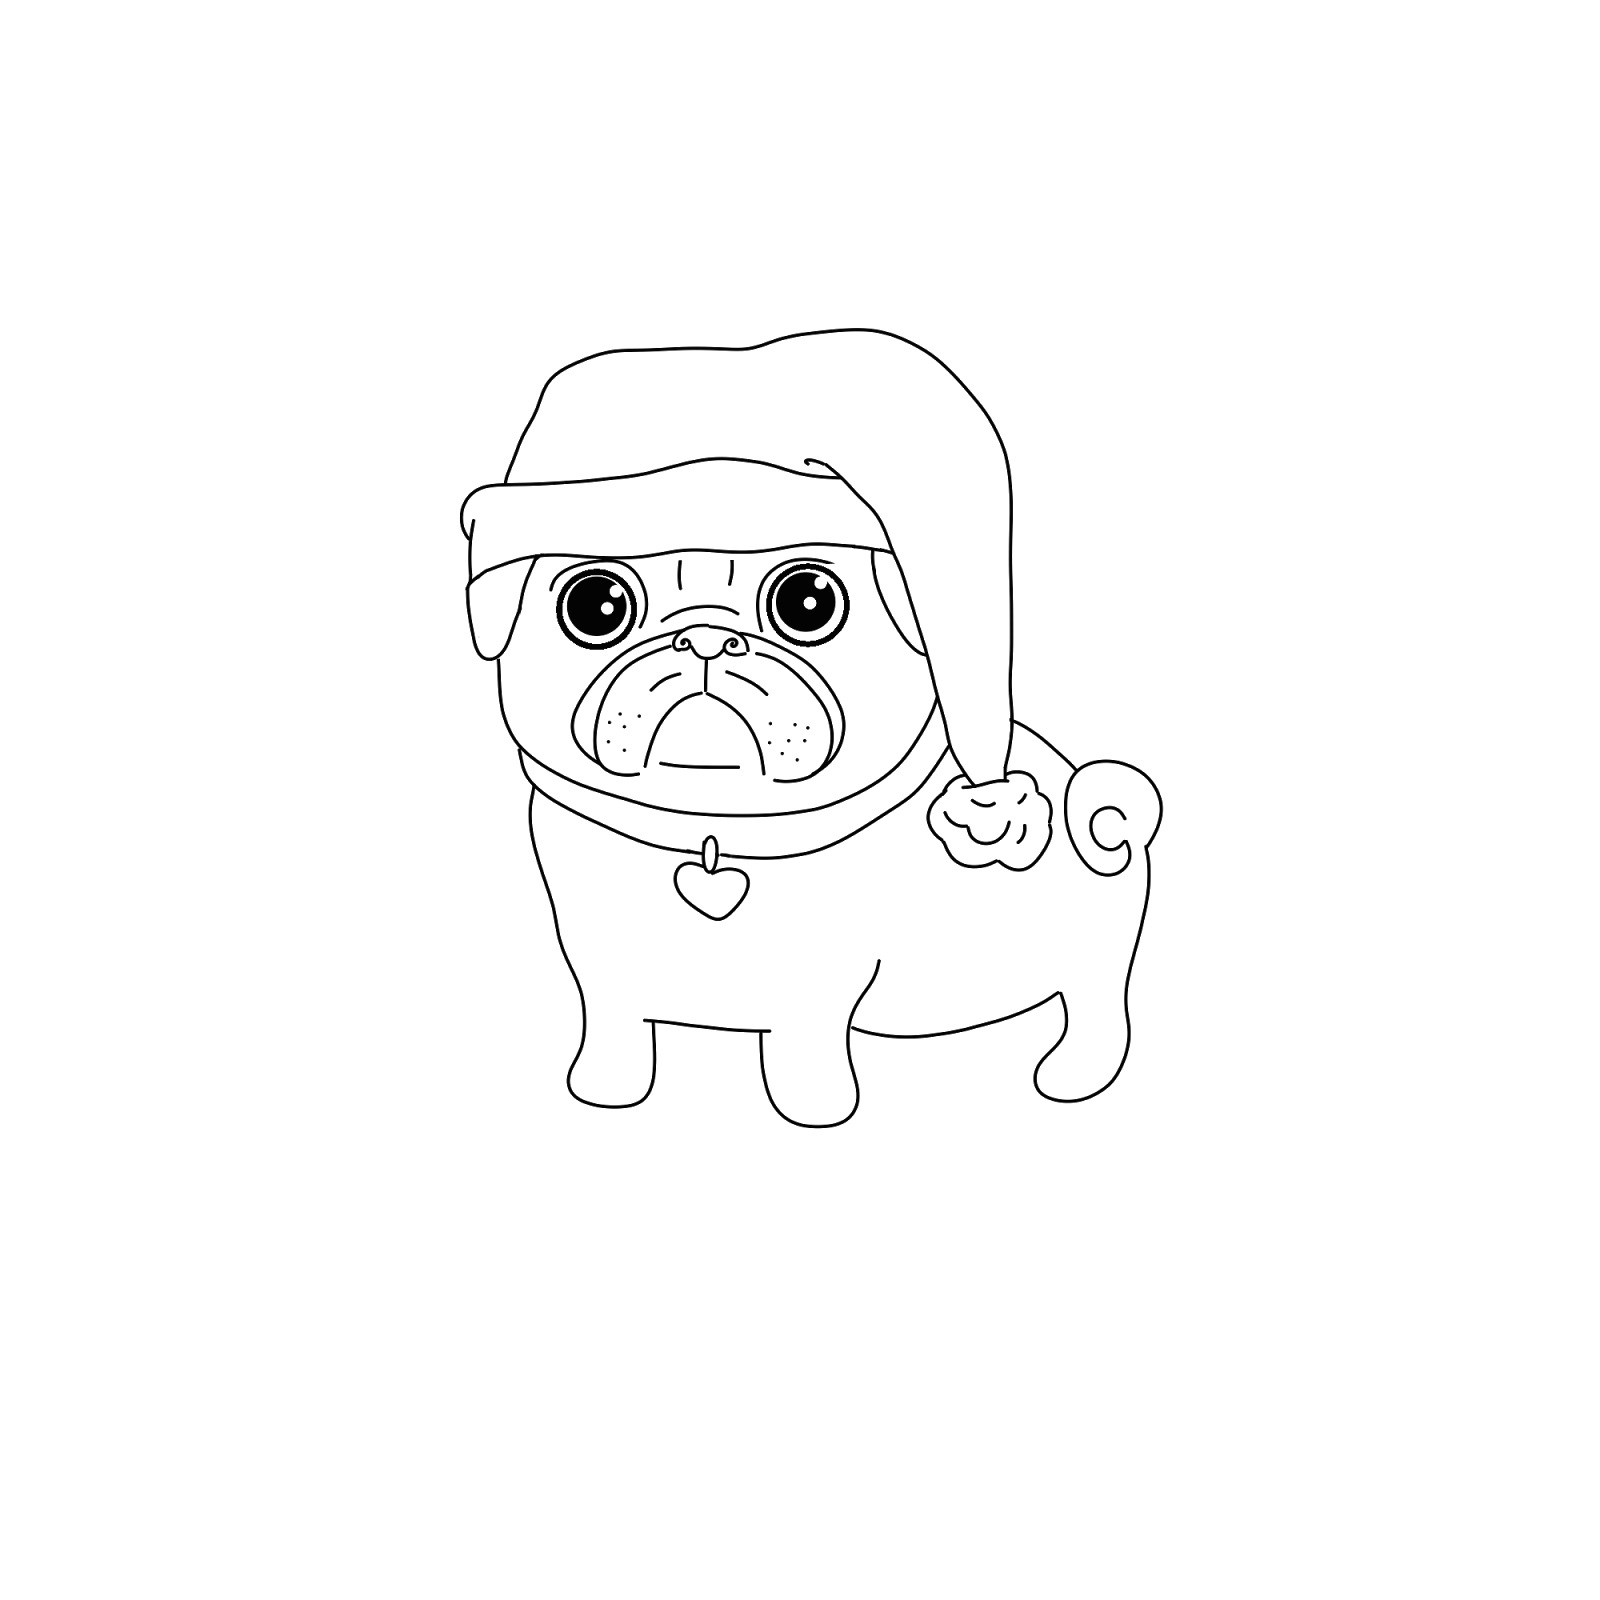 pug coloring pages - photo#34